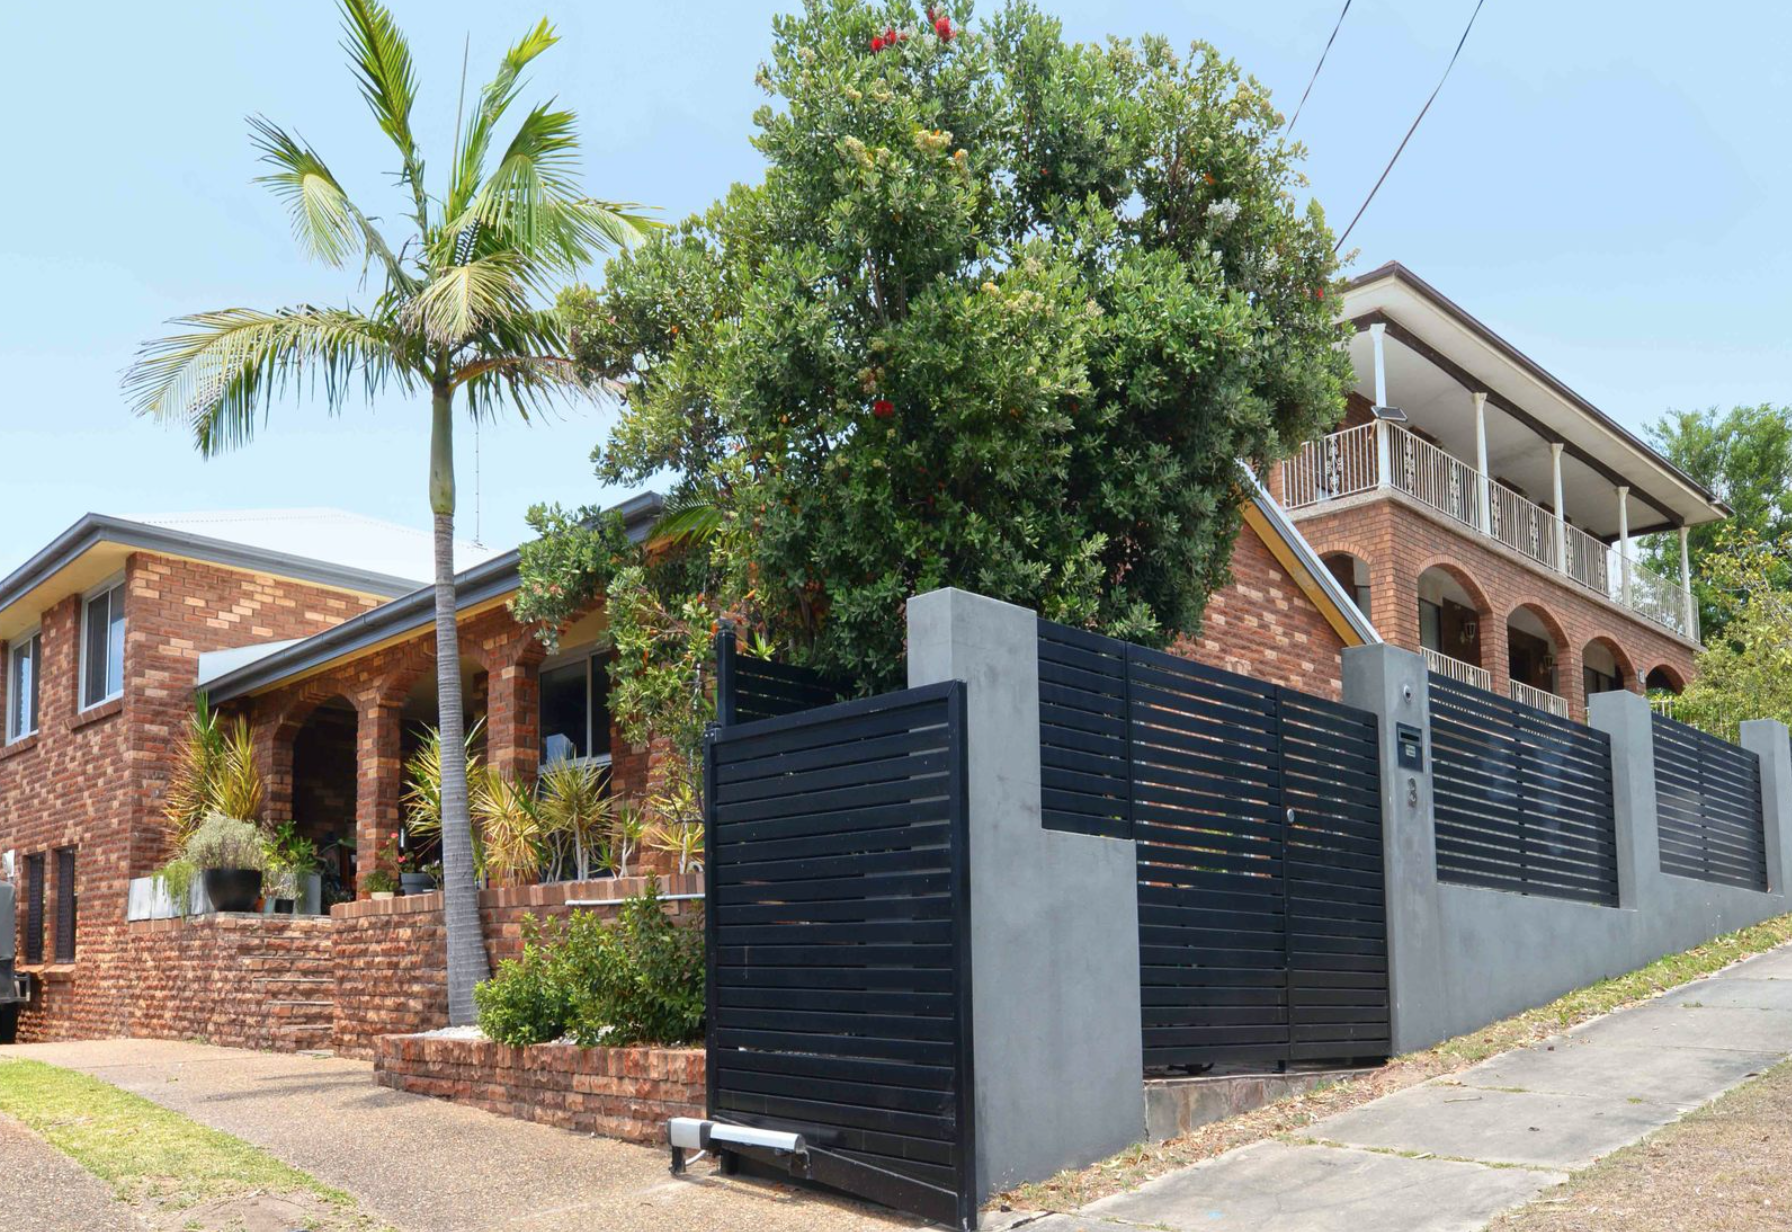 The Malabar Home That Sold Despite COVID-19 Restrictions